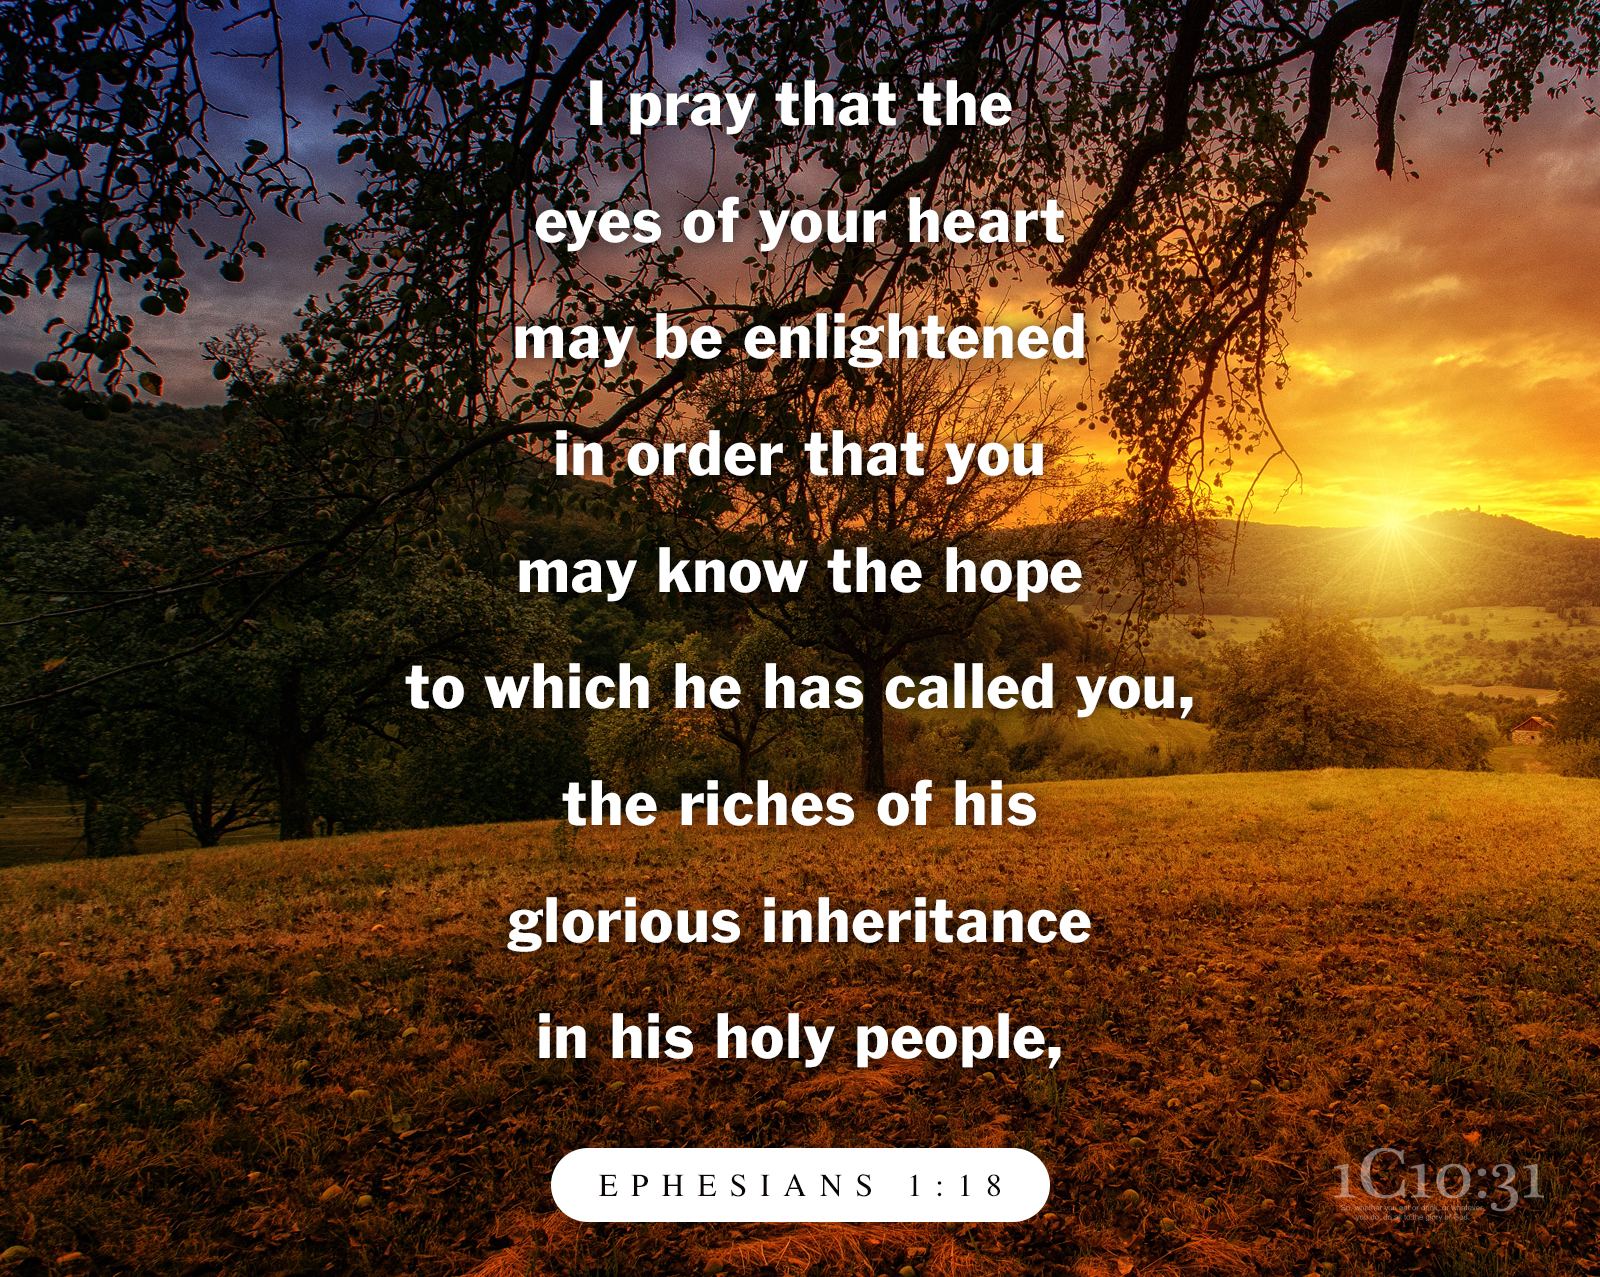 Ephesians 1:18 I pray that the eyes of your heart may be enlightened in order that you may know the hope to which he has called you, the riches of his glorious inheritance in his holy people,